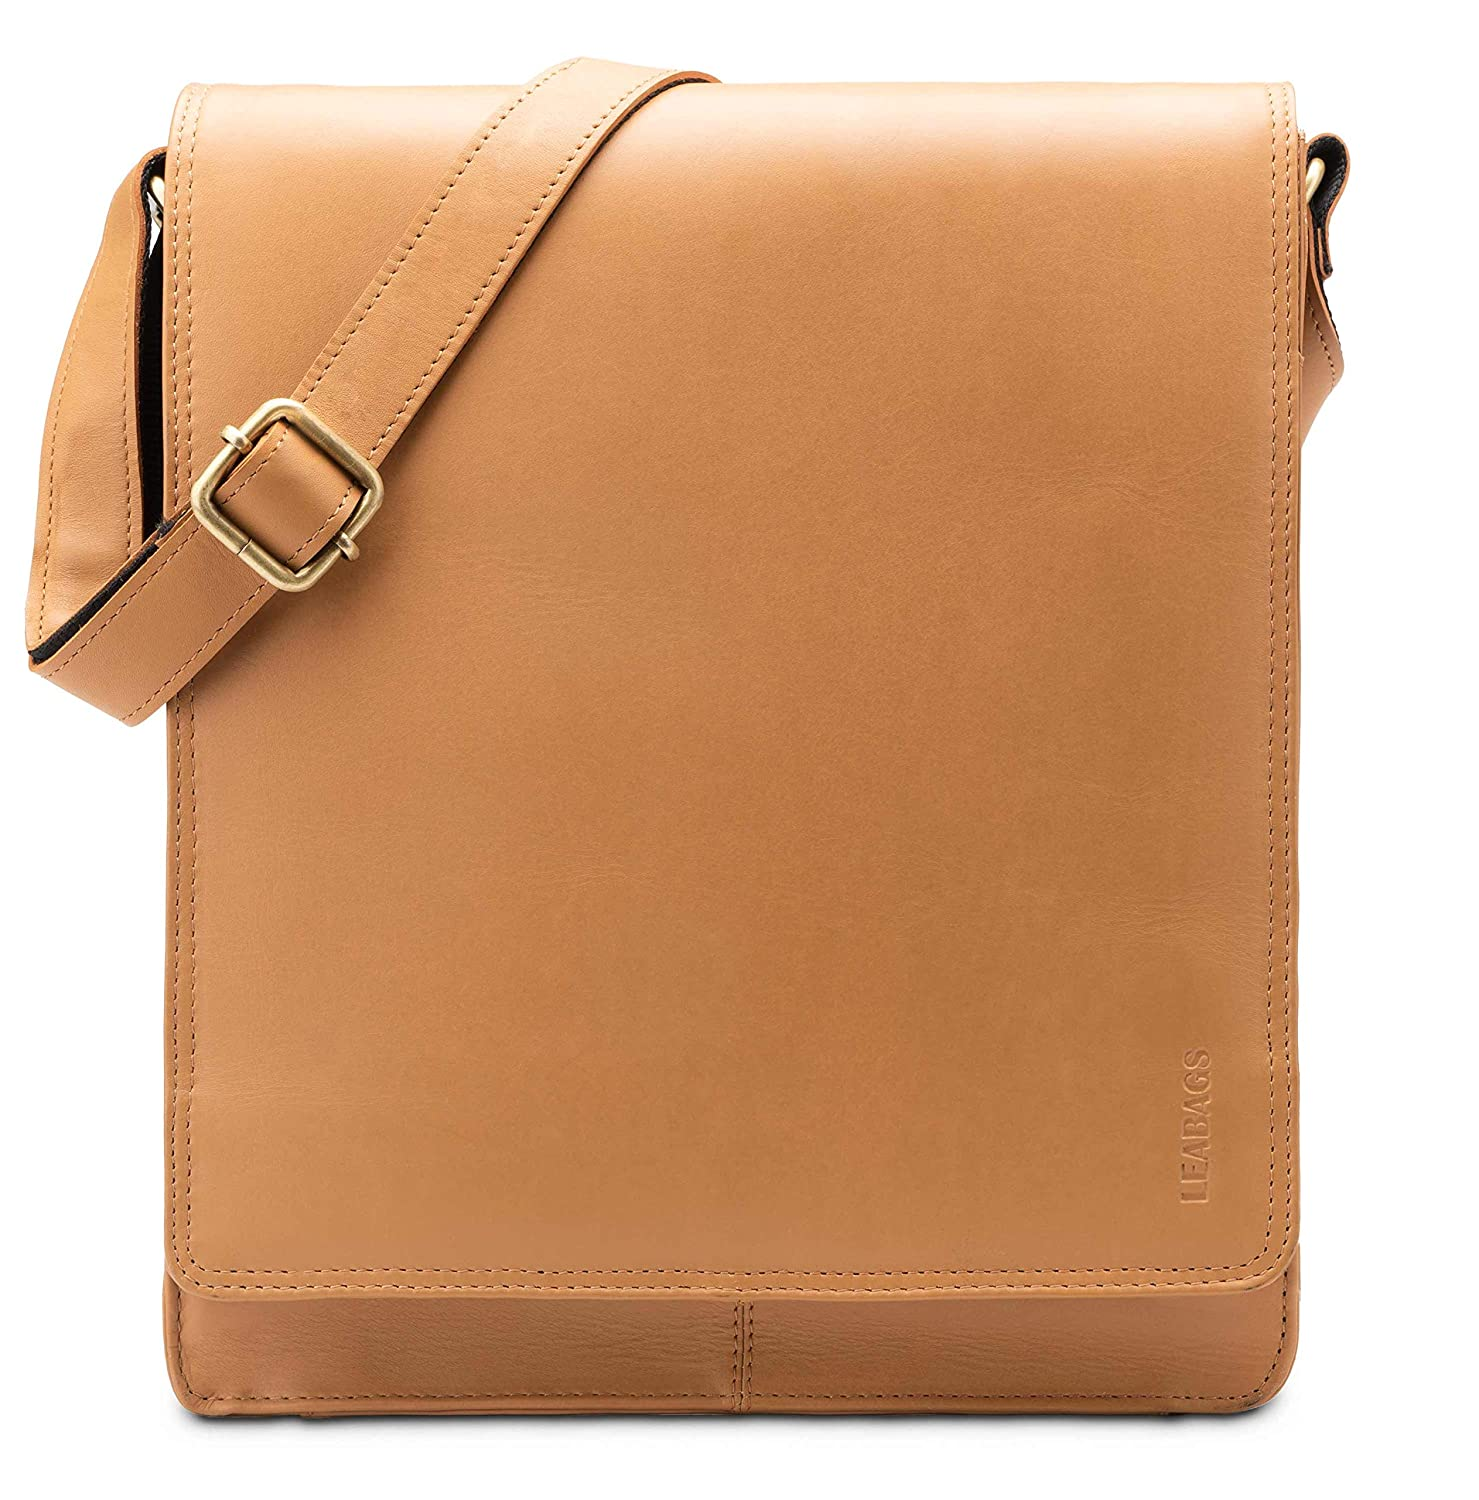 2c5b143b47 Where To Buy Leather Bag In London | Building Materials Bargain Center